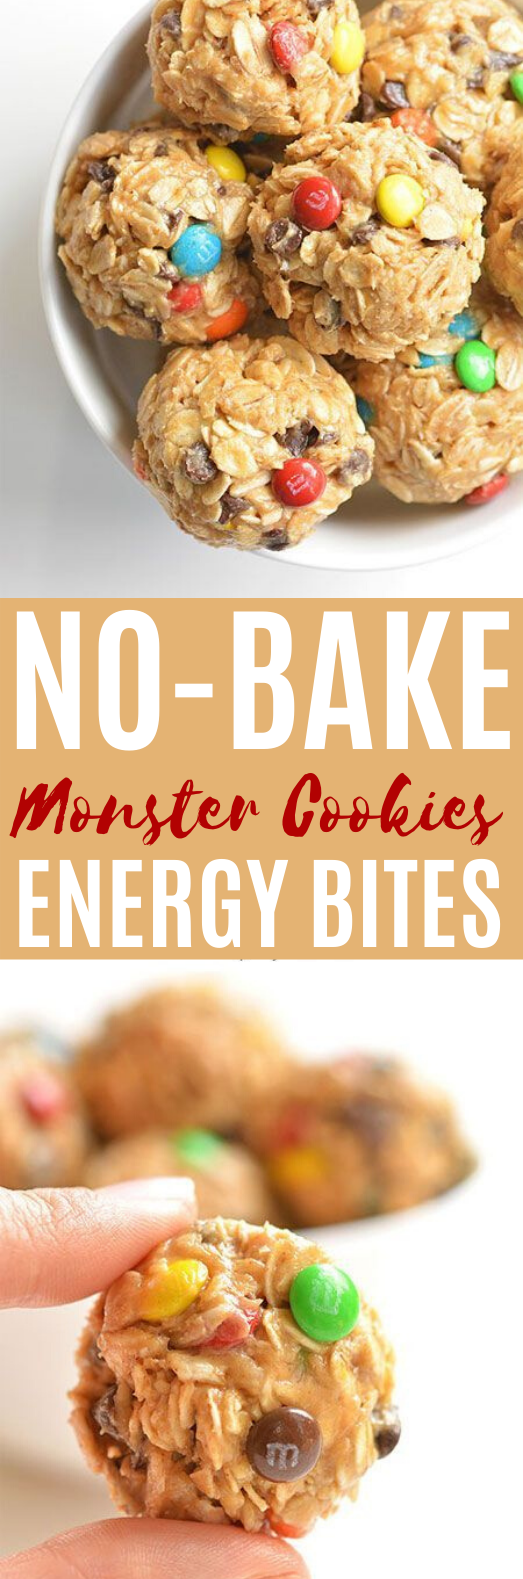 No-Bake Monster Cookie Energy Bites #healthy #snacks #vegetarian #keto #kidfriendly